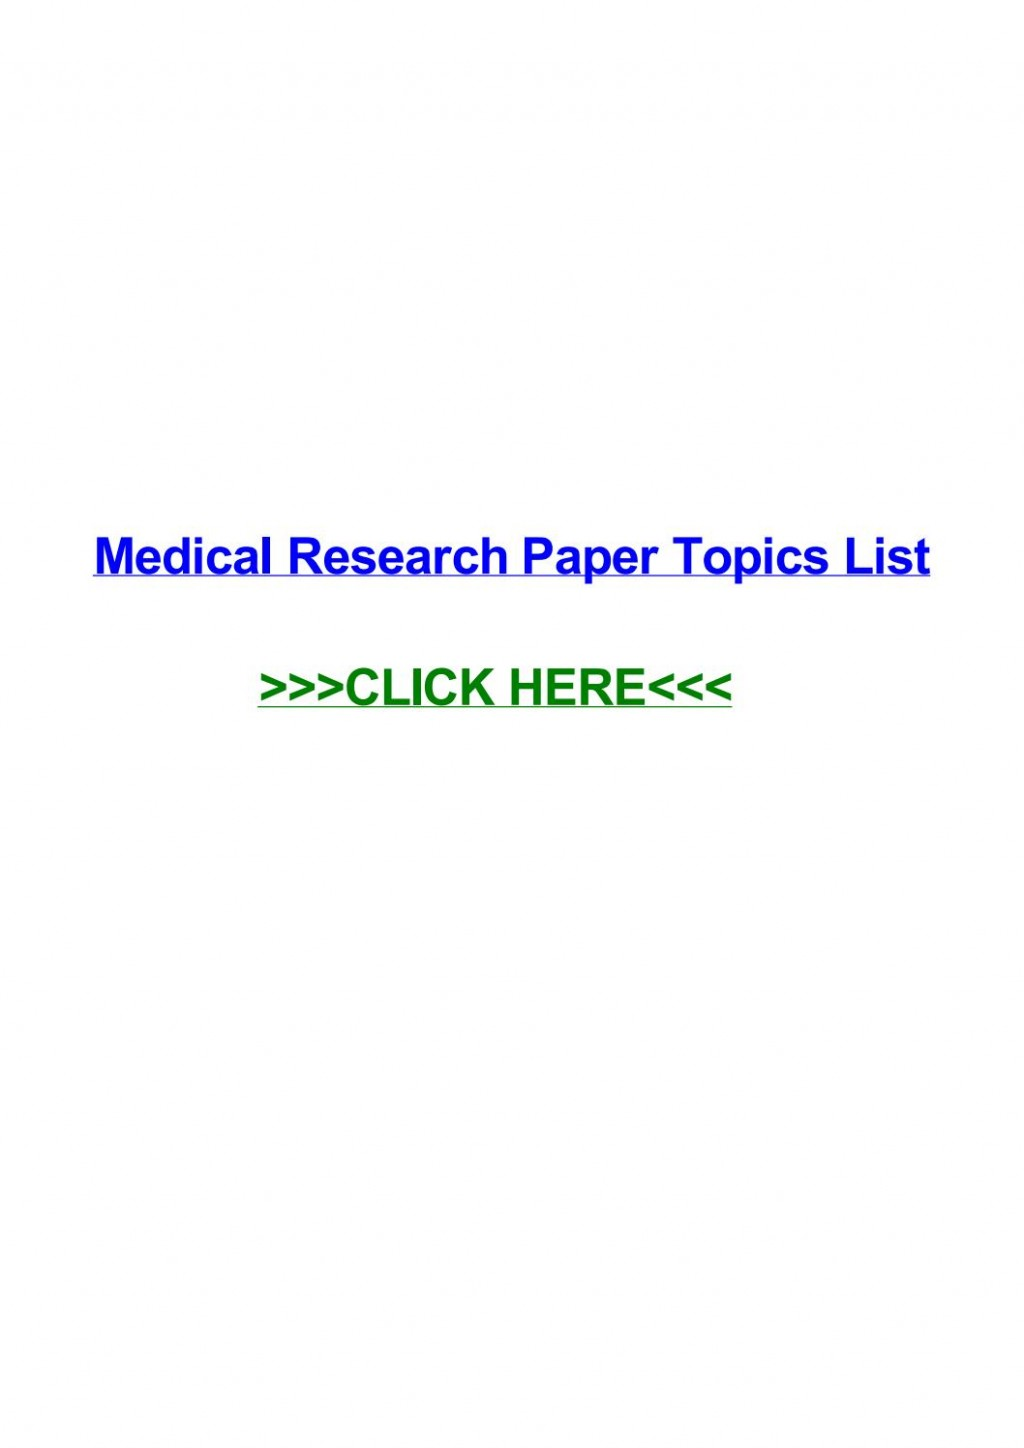 015 Research Paper Medical Topics Page 1 Stupendous Best Ethics For High School Students Large